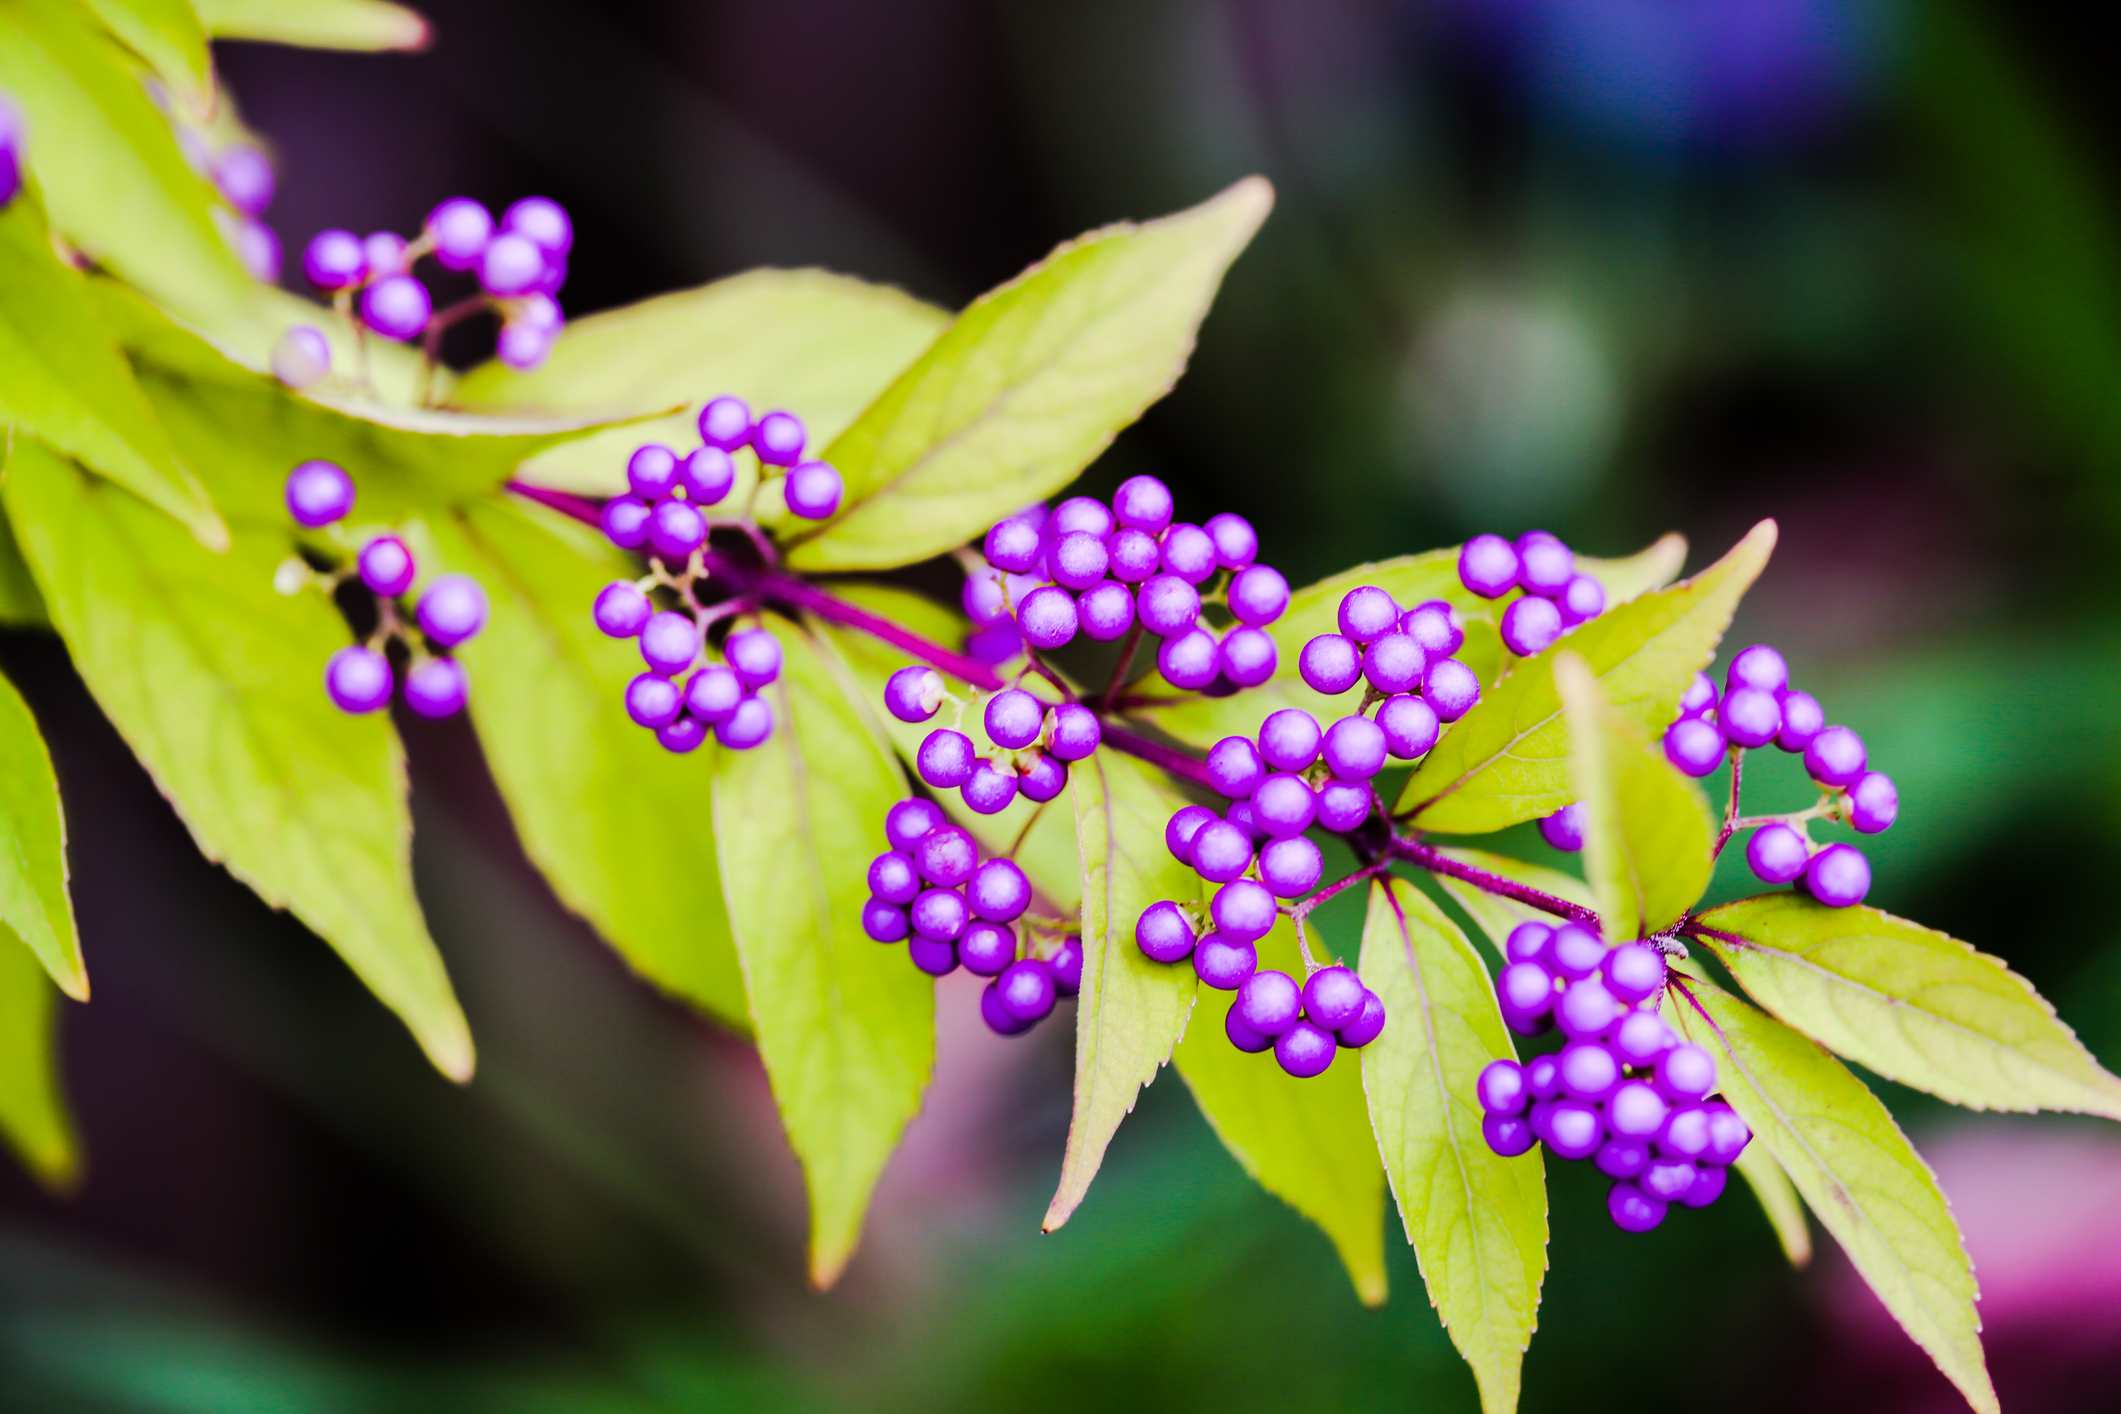 Beautyberry shrub branch with purple berries.